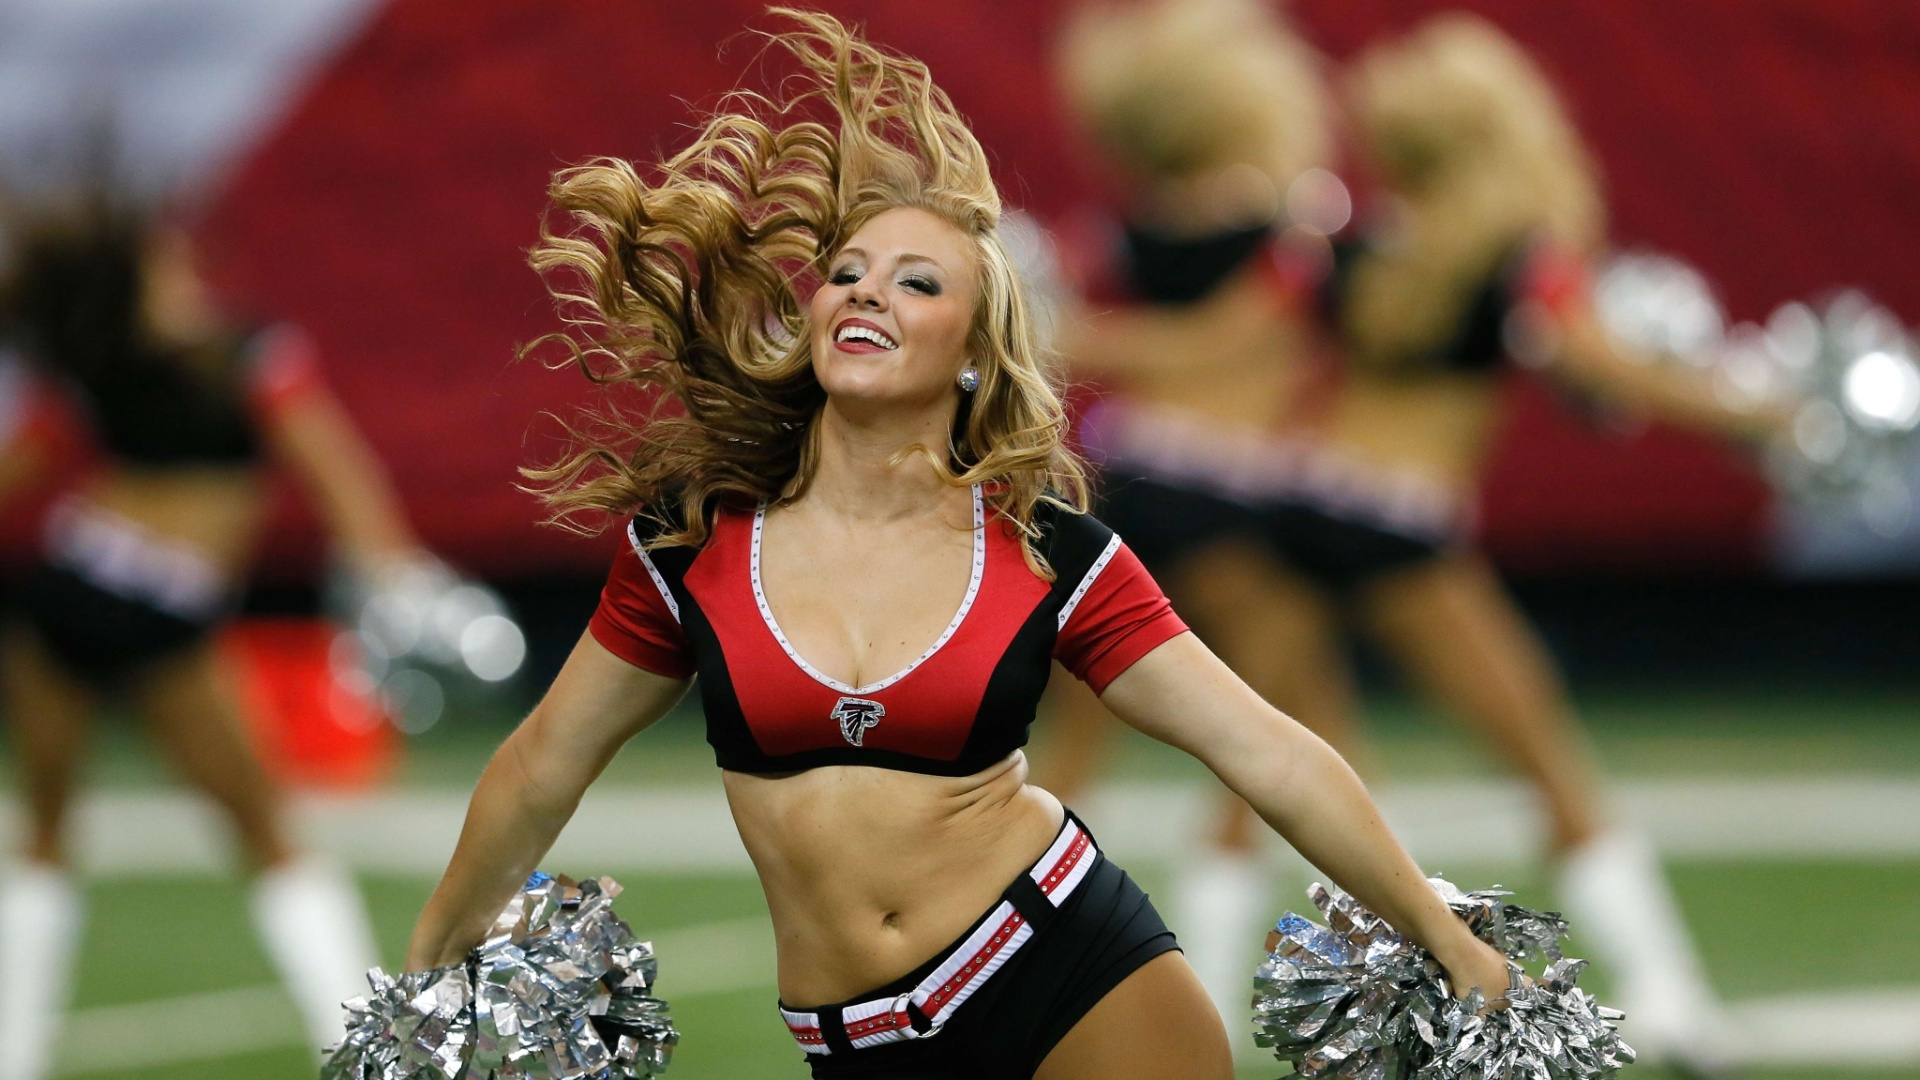 20.out.2013 - Cheerleader do Atlanta Falcons durante performance na partida contra o Tampa Bay Buccaneers